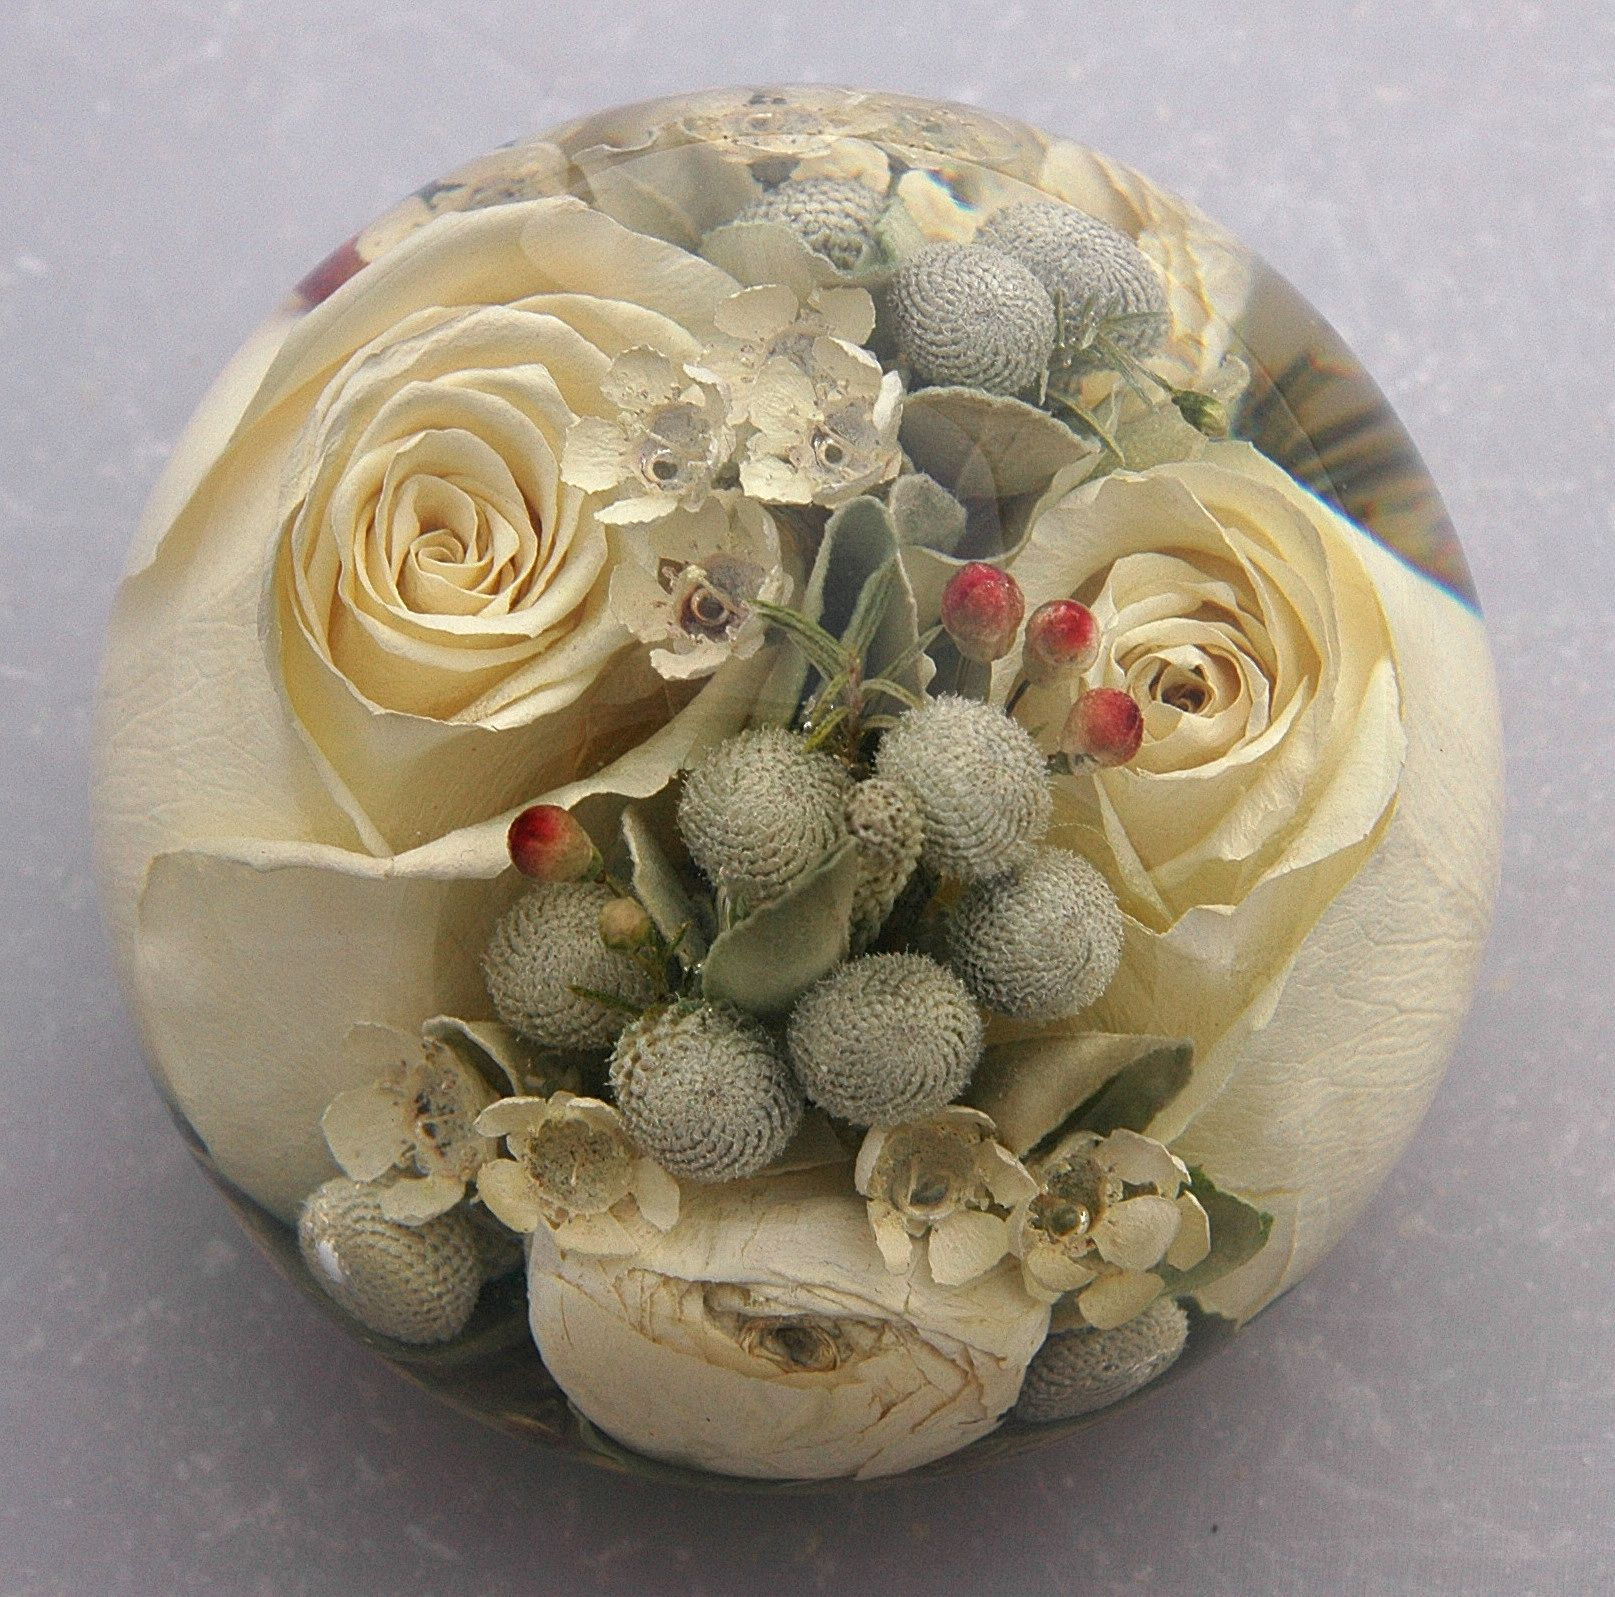 Wedding Flowers In Resin: Flower Preservation Paperweights A Lovely Keepsake From